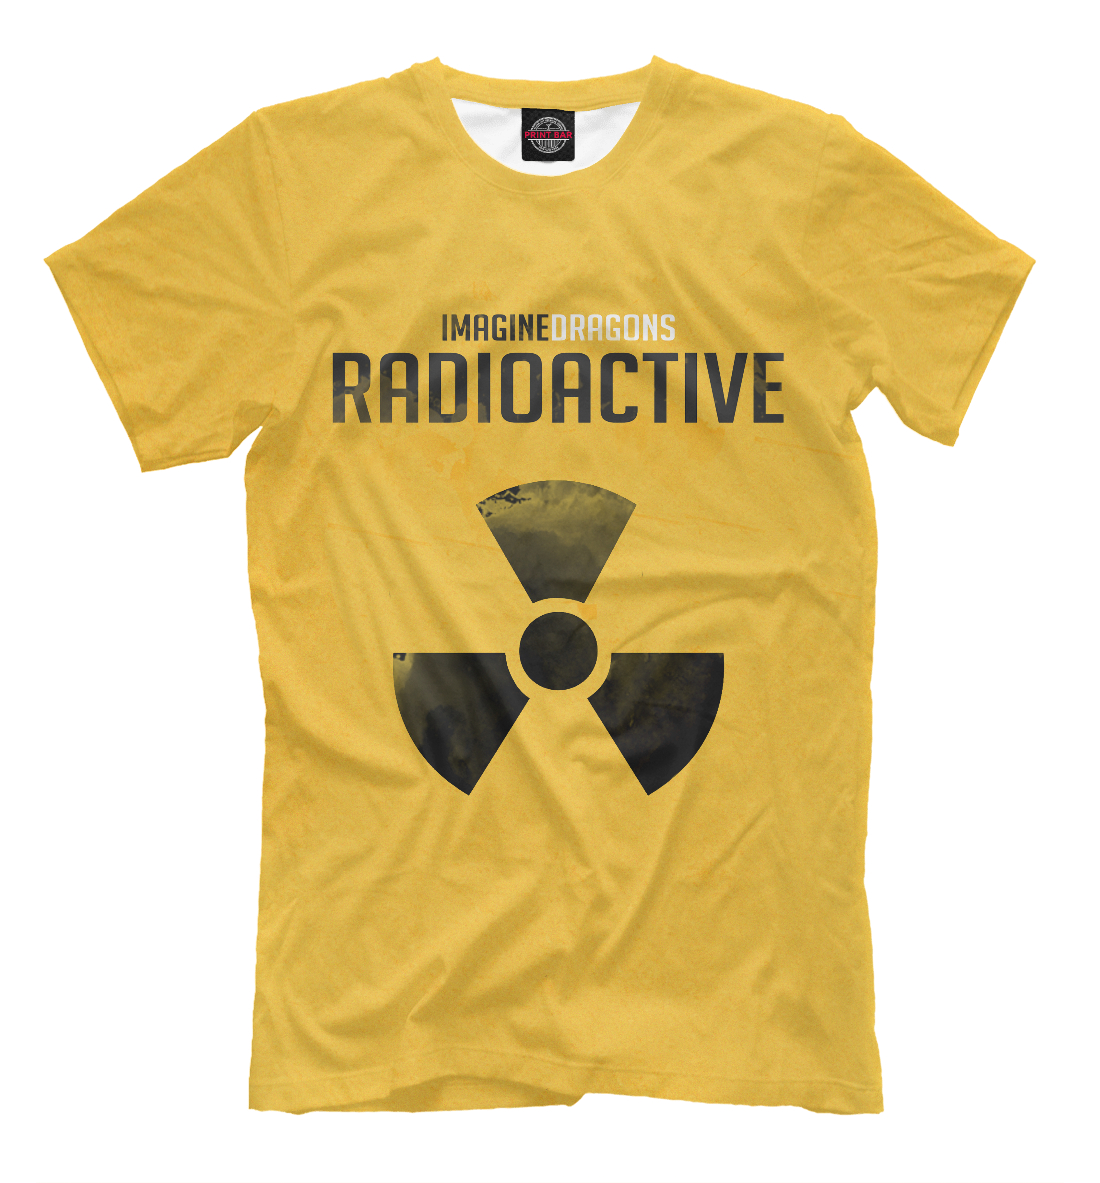 Купить Imagine Dragons radioactive, Printbar, Футболки, IMA-566551-fut-2